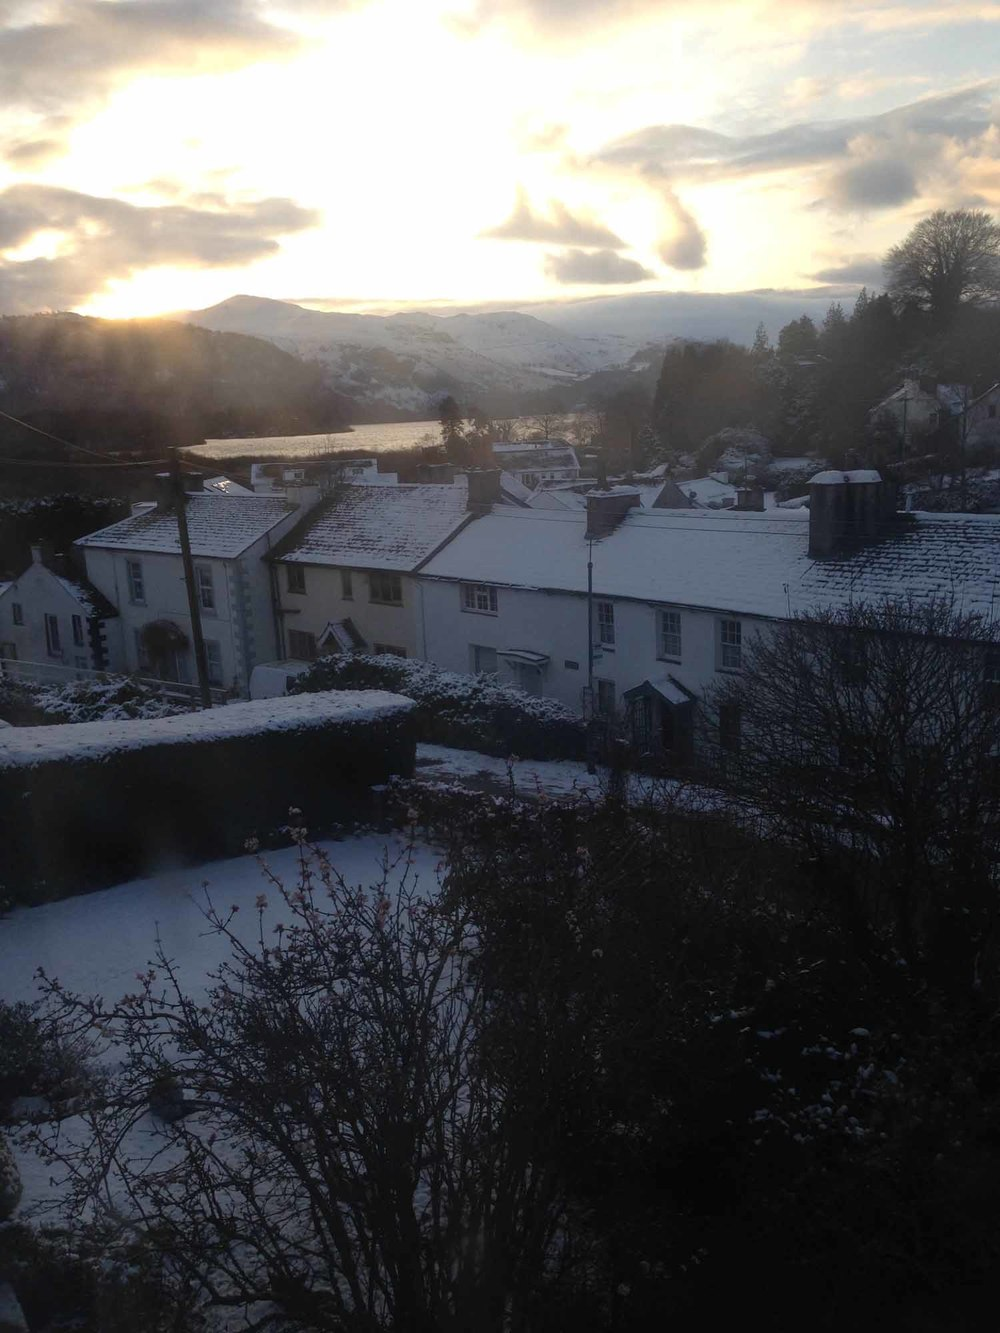 snow_view_derwentwater_view_from_room_3.jpg